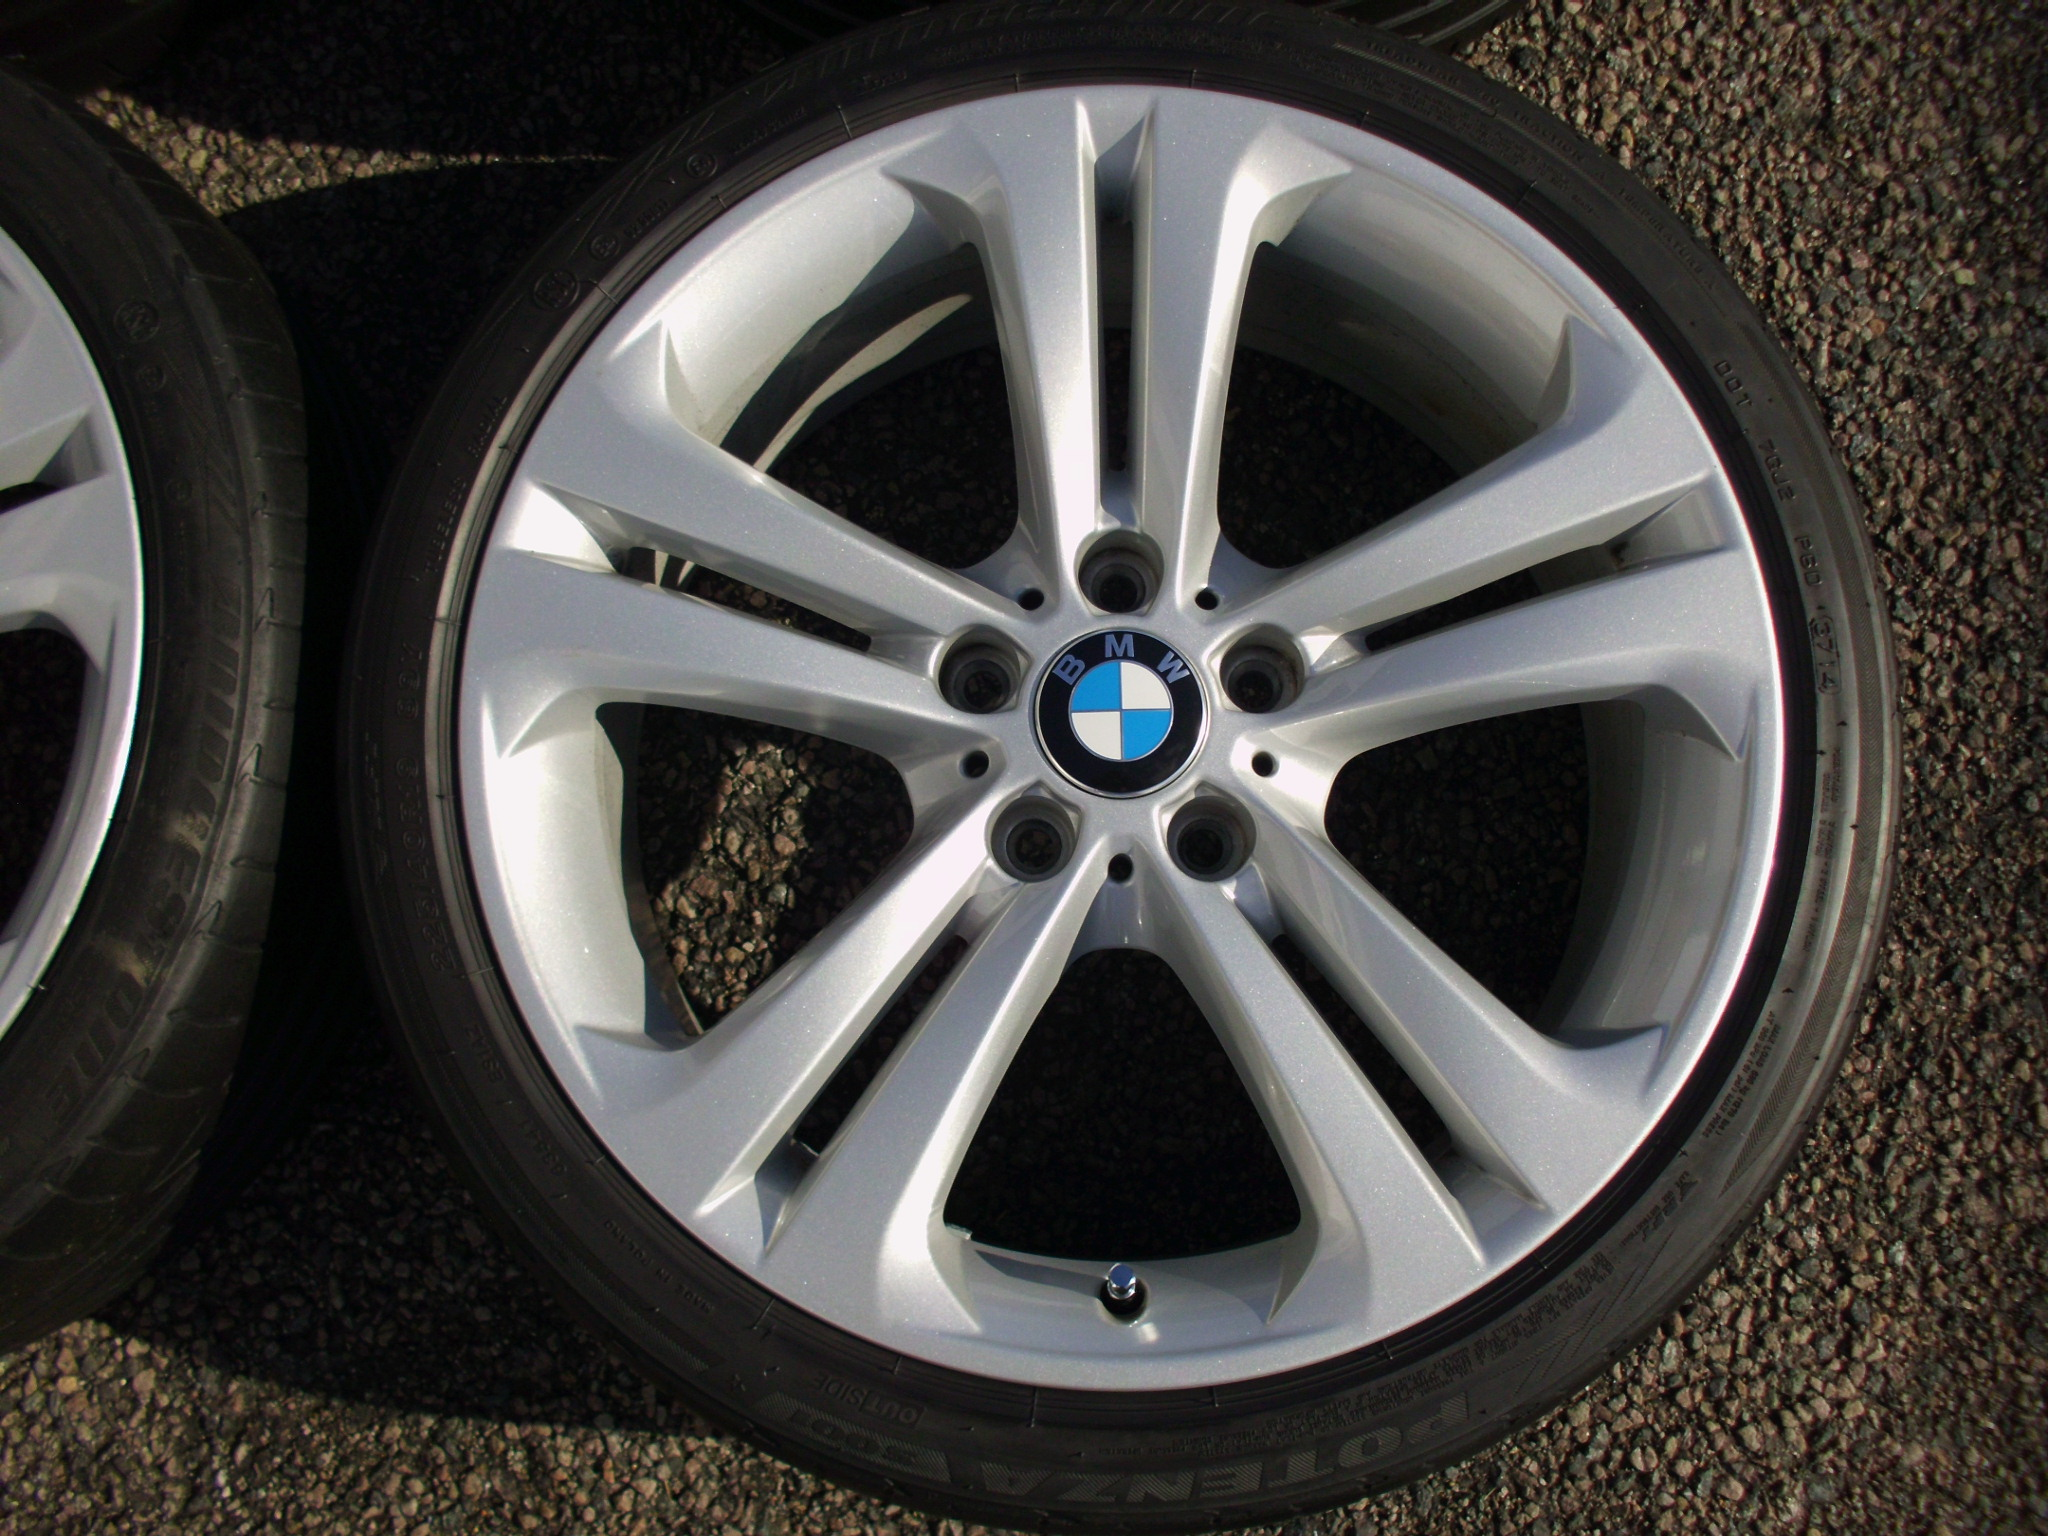 "USED 19"" GENUINE BMW STYLE 401 F30 5 TWIN SPOKE ALLOY WHEELS , VG ORIGINAL CONDITION INC BRIDGESTONE RUNFLAT TYRES"